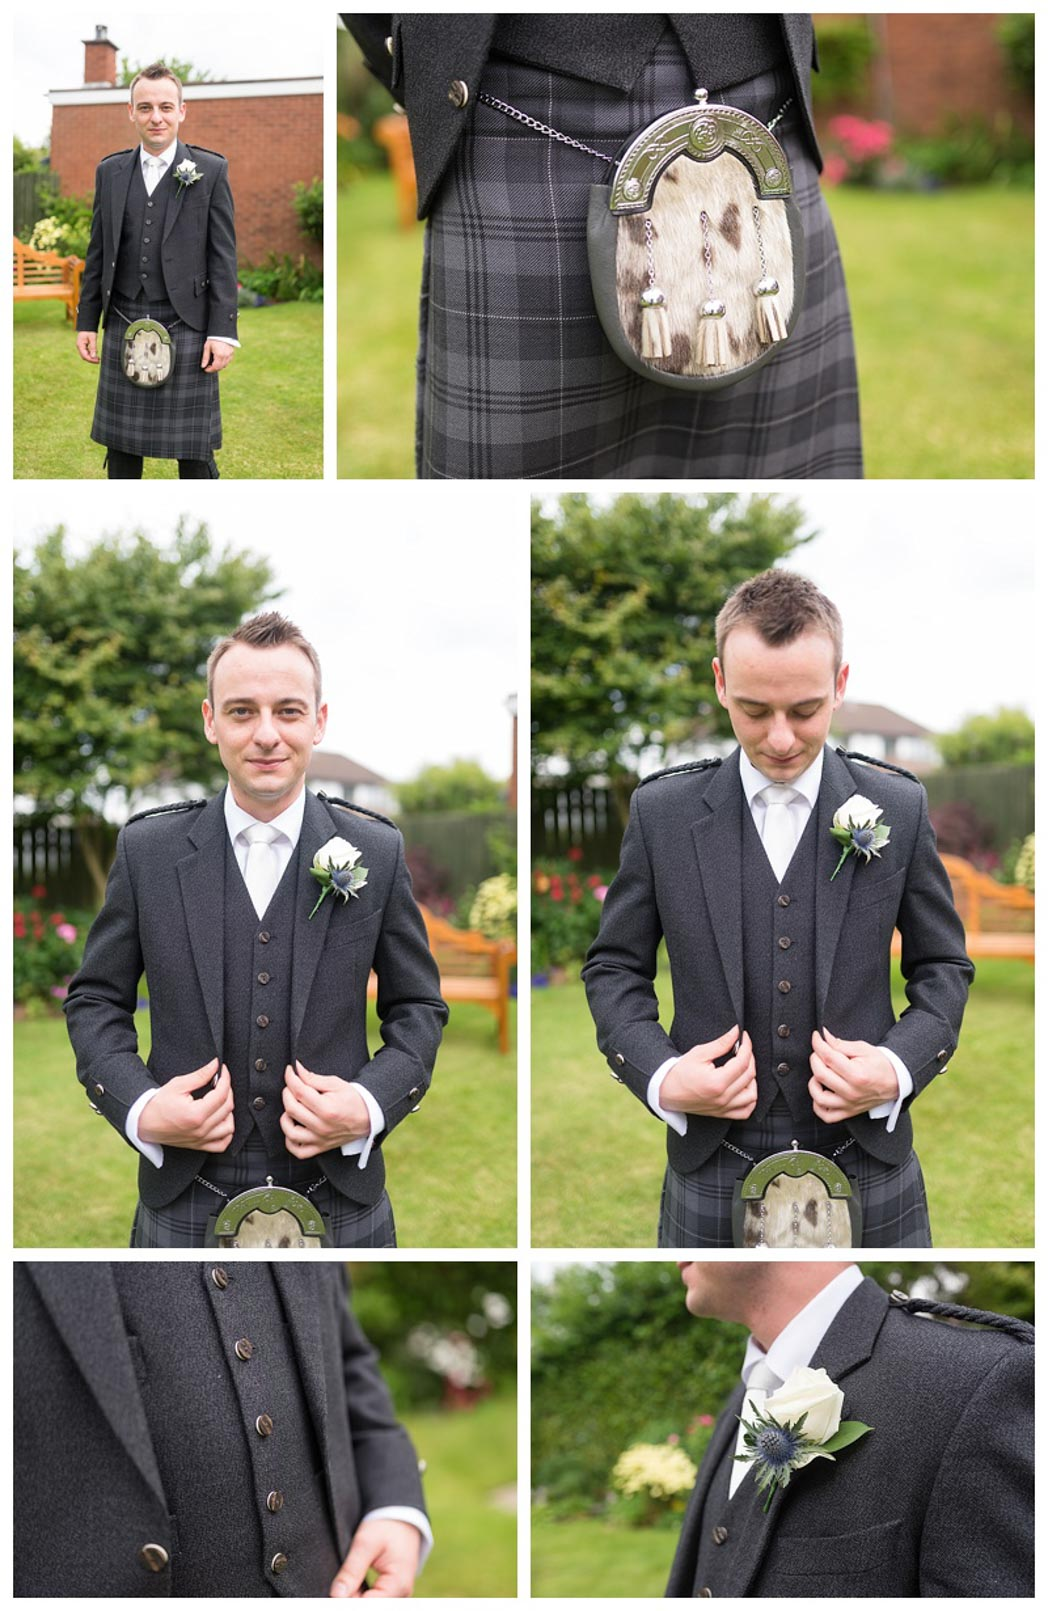 Ballygally Castle Wedding Photographs by Ricky Parker Photography 10